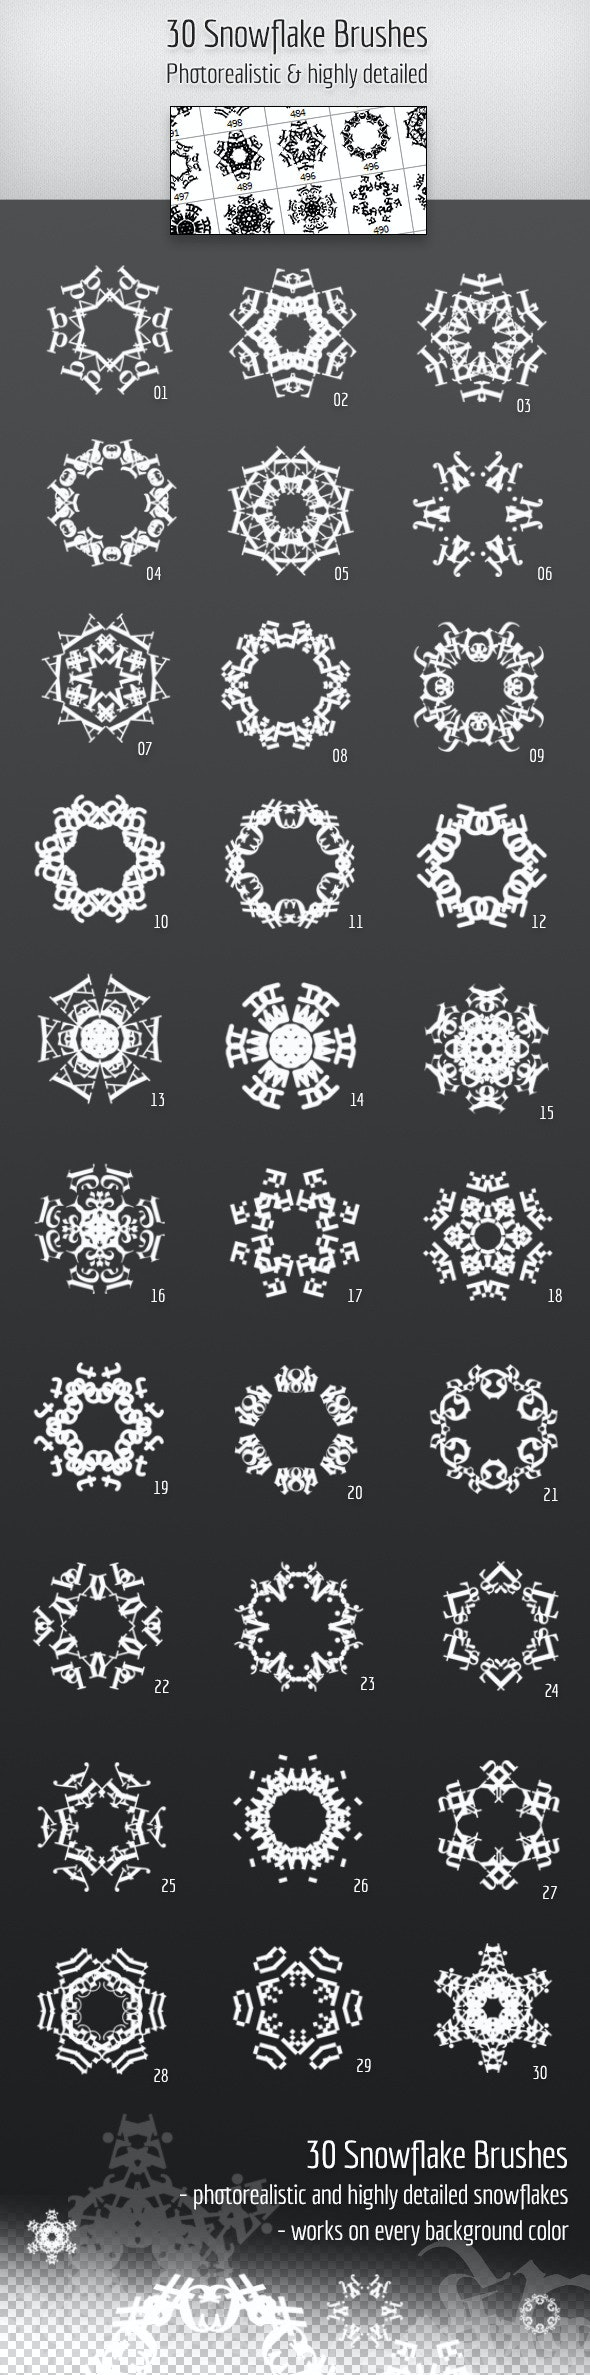 30 Highly detailed Snowflake Brushes - Miscellaneous Brushes